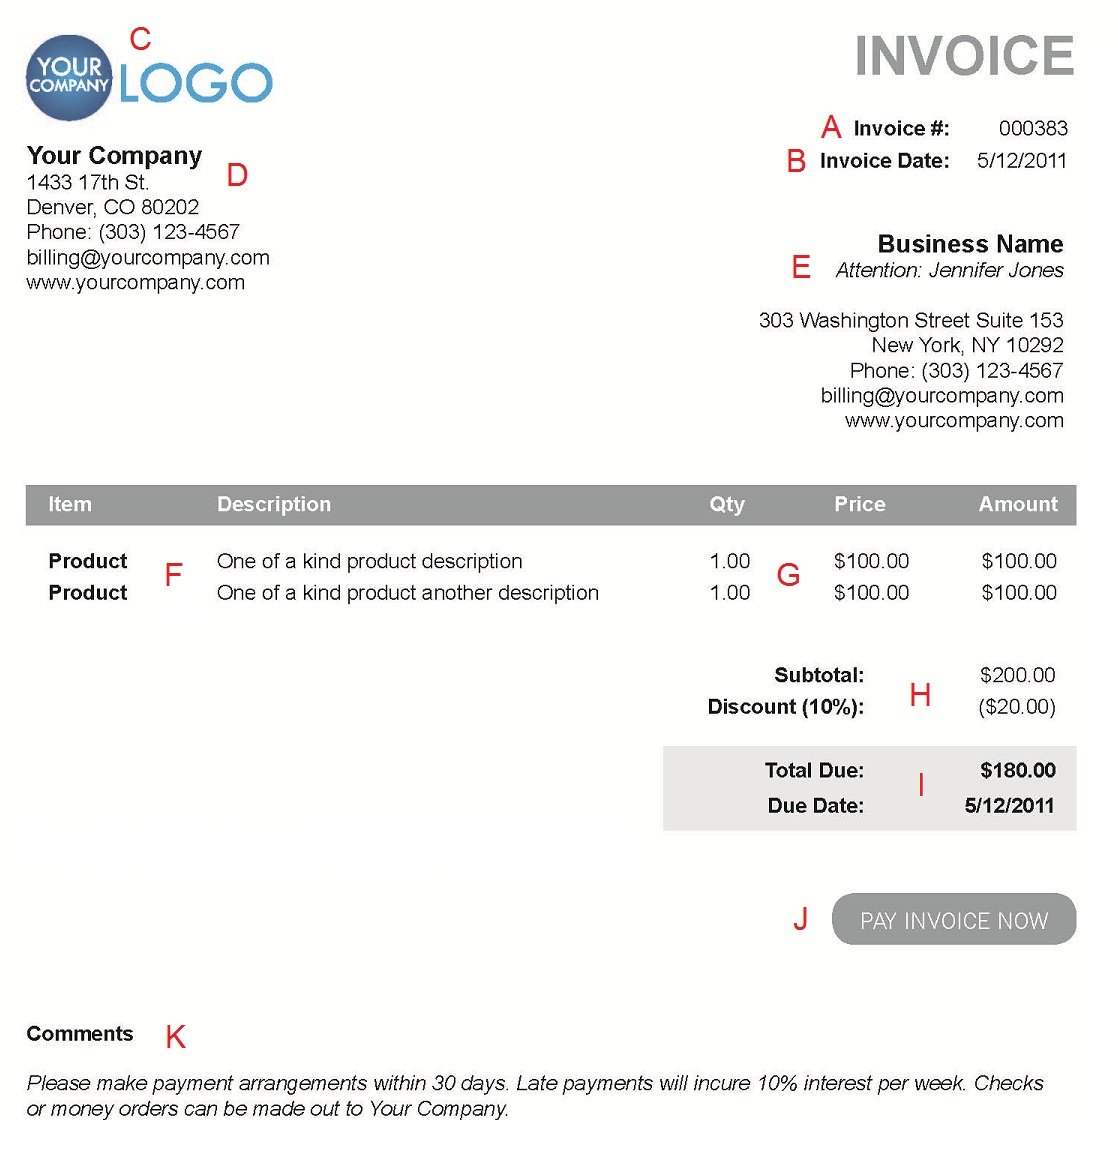 Weirdmailus  Pleasing The  Different Sections Of An Electronic Payment Invoice With Likable A  With Charming Free Printable Invoices Also Invoice Vs Msrp In Addition Invoices Online And Invoice Cloud As Well As Invoice Financing Additionally Google Invoice Template From Paysimplecom With Weirdmailus  Likable The  Different Sections Of An Electronic Payment Invoice With Charming A  And Pleasing Free Printable Invoices Also Invoice Vs Msrp In Addition Invoices Online From Paysimplecom